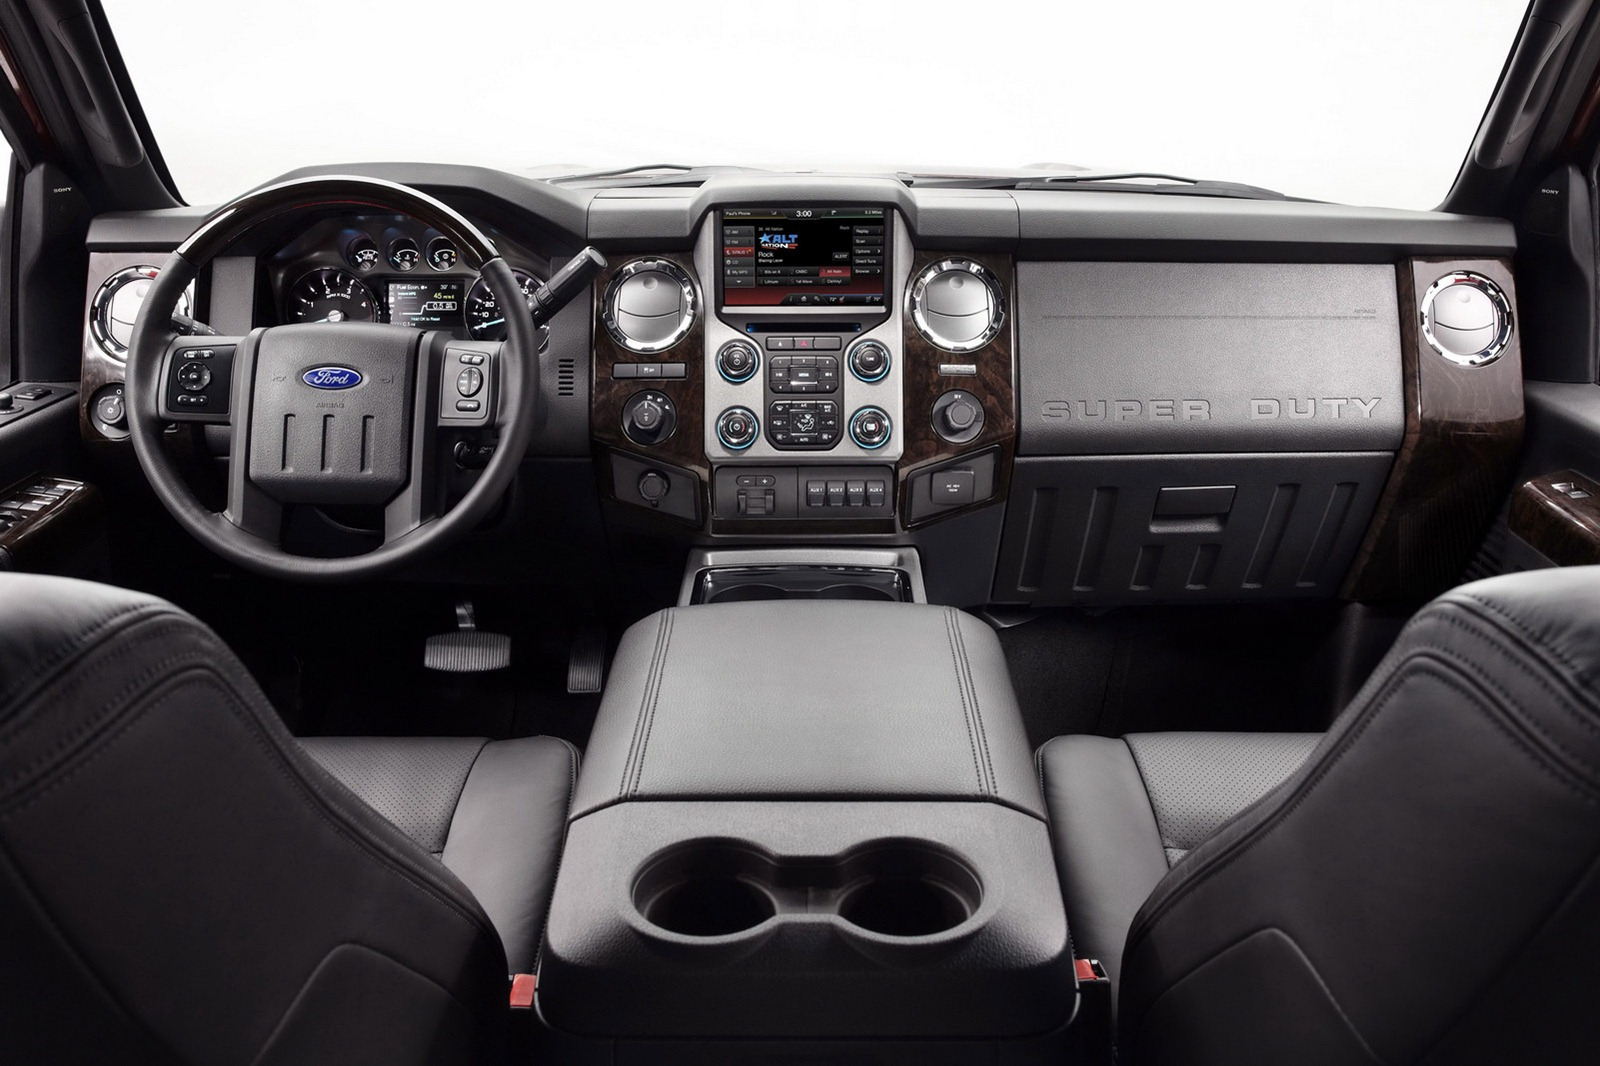 2013 ford f series super duty launched with platinum model. Black Bedroom Furniture Sets. Home Design Ideas